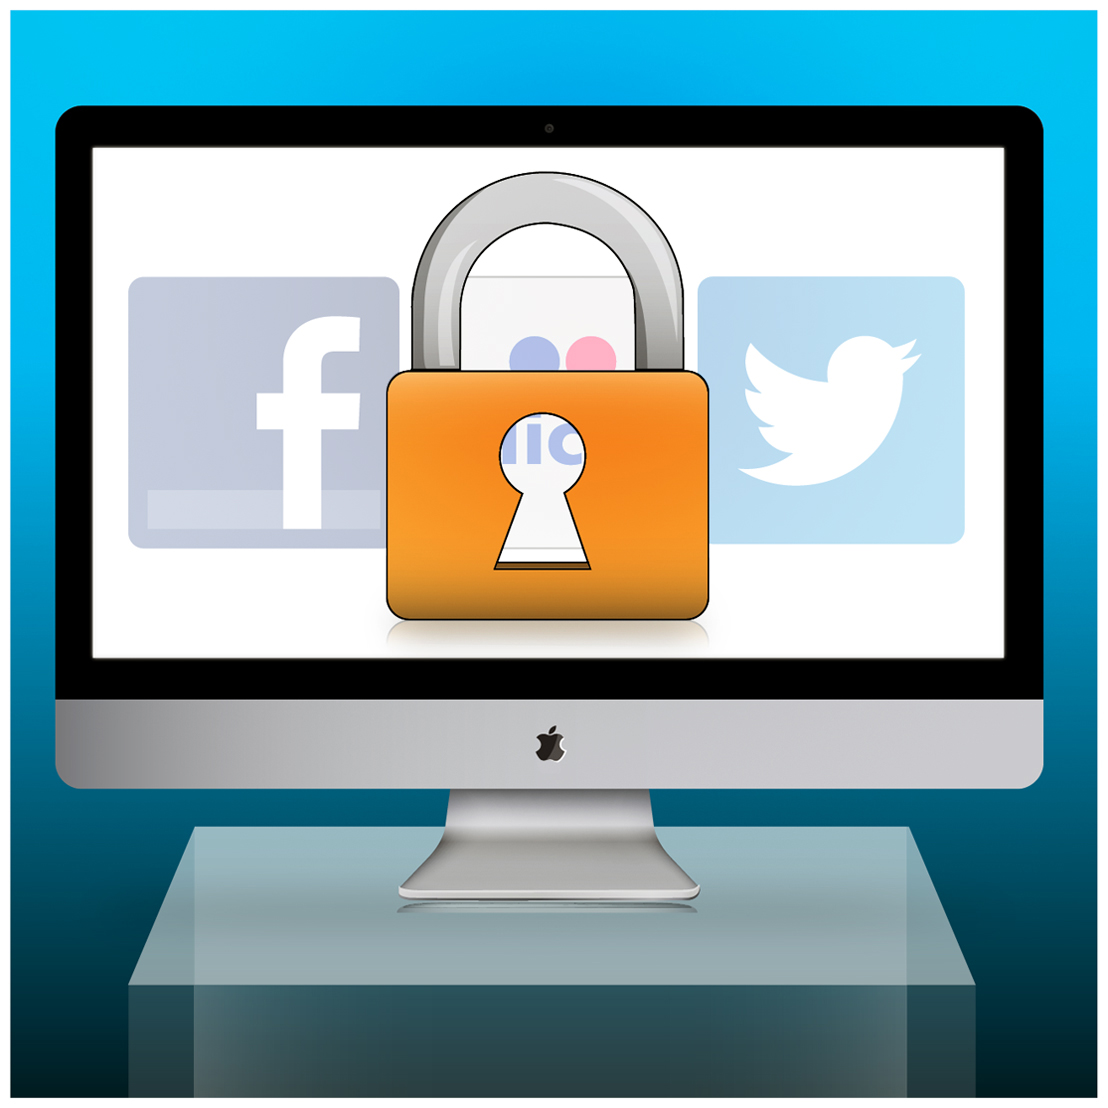 social media and privacy Manage your social media accounts choose the privacy settings that are right for you look for security or privacy settings in social media apps or on websites.